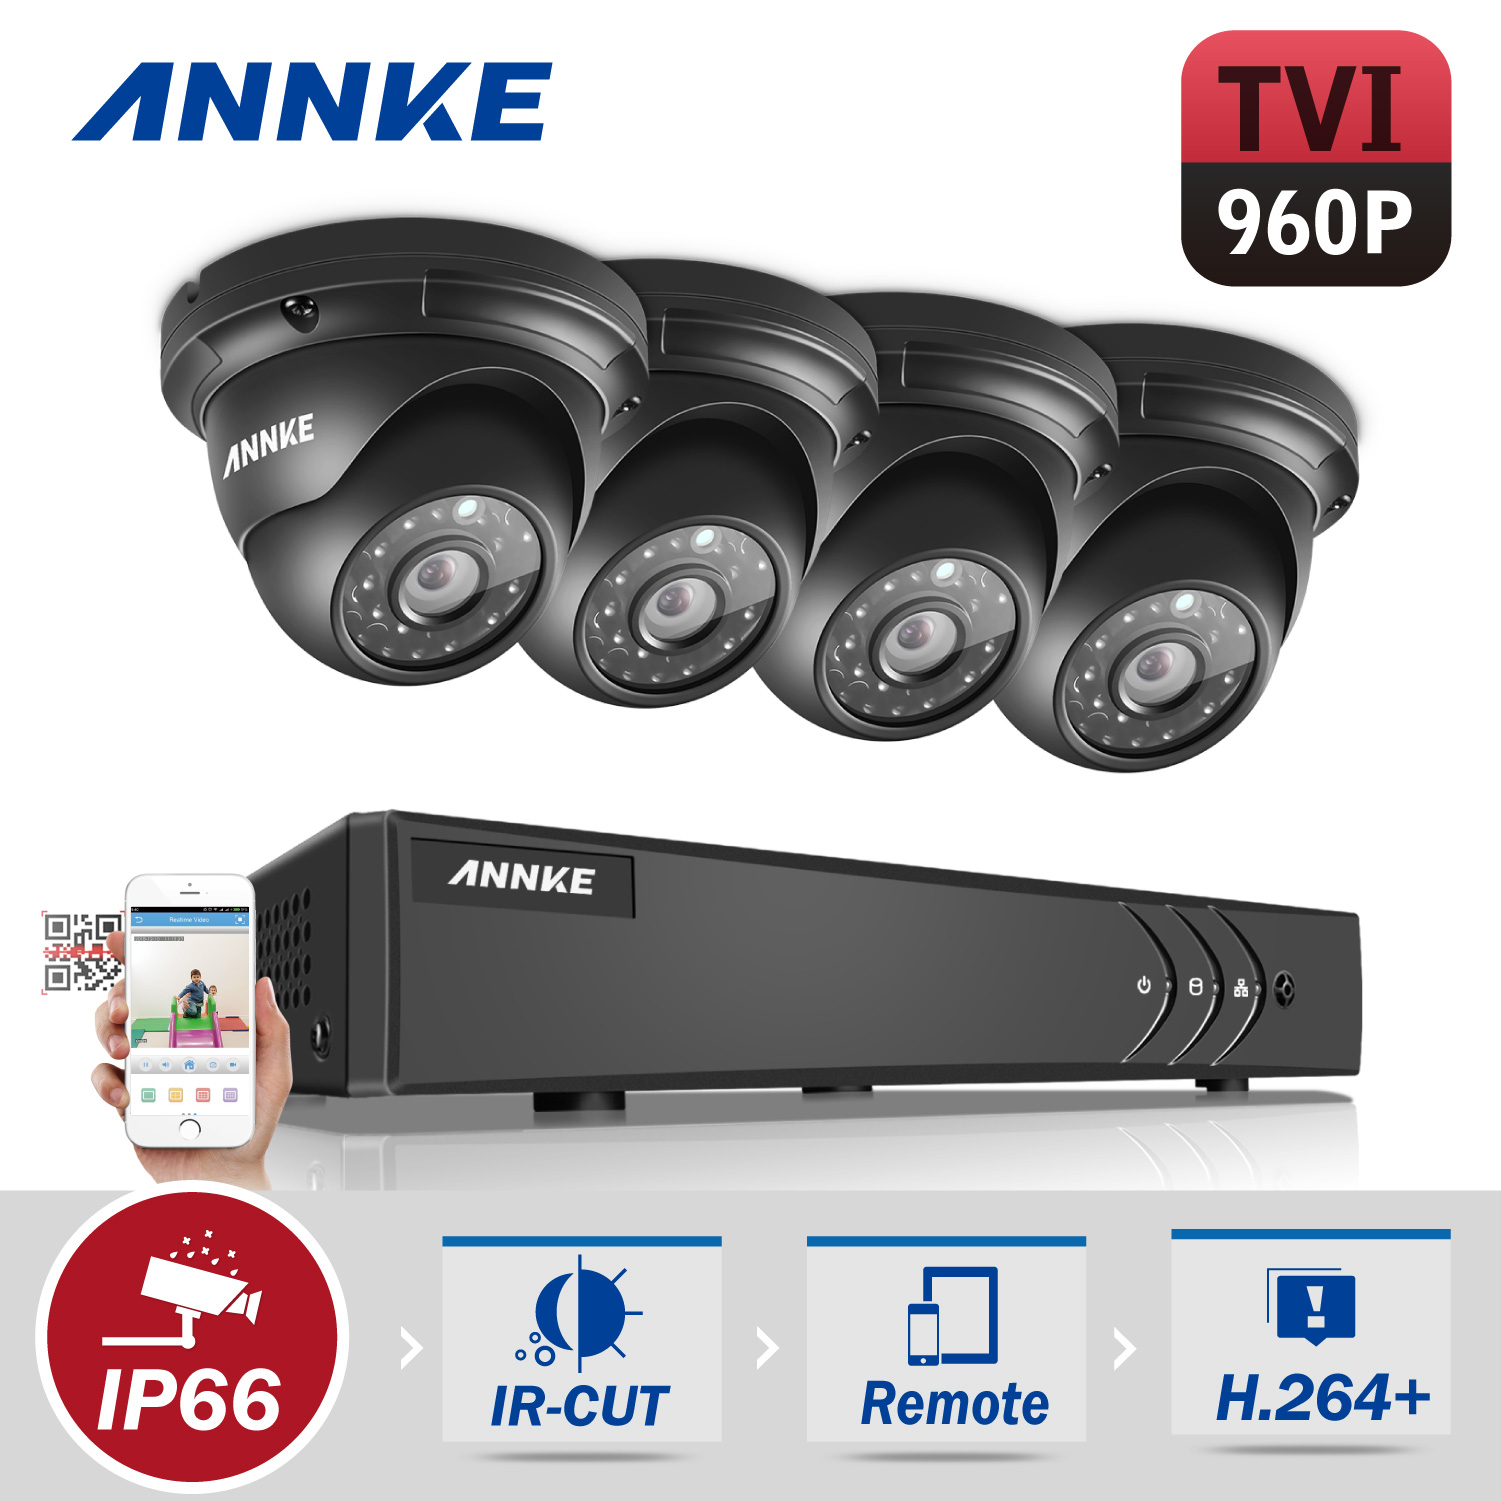 ANNKE HD 1080P 8CH CCTV System Video Recorder DVR 4PCS 960P 1.3MP Surveillance Camera IR CCTV kits for Home Security With NO HDD